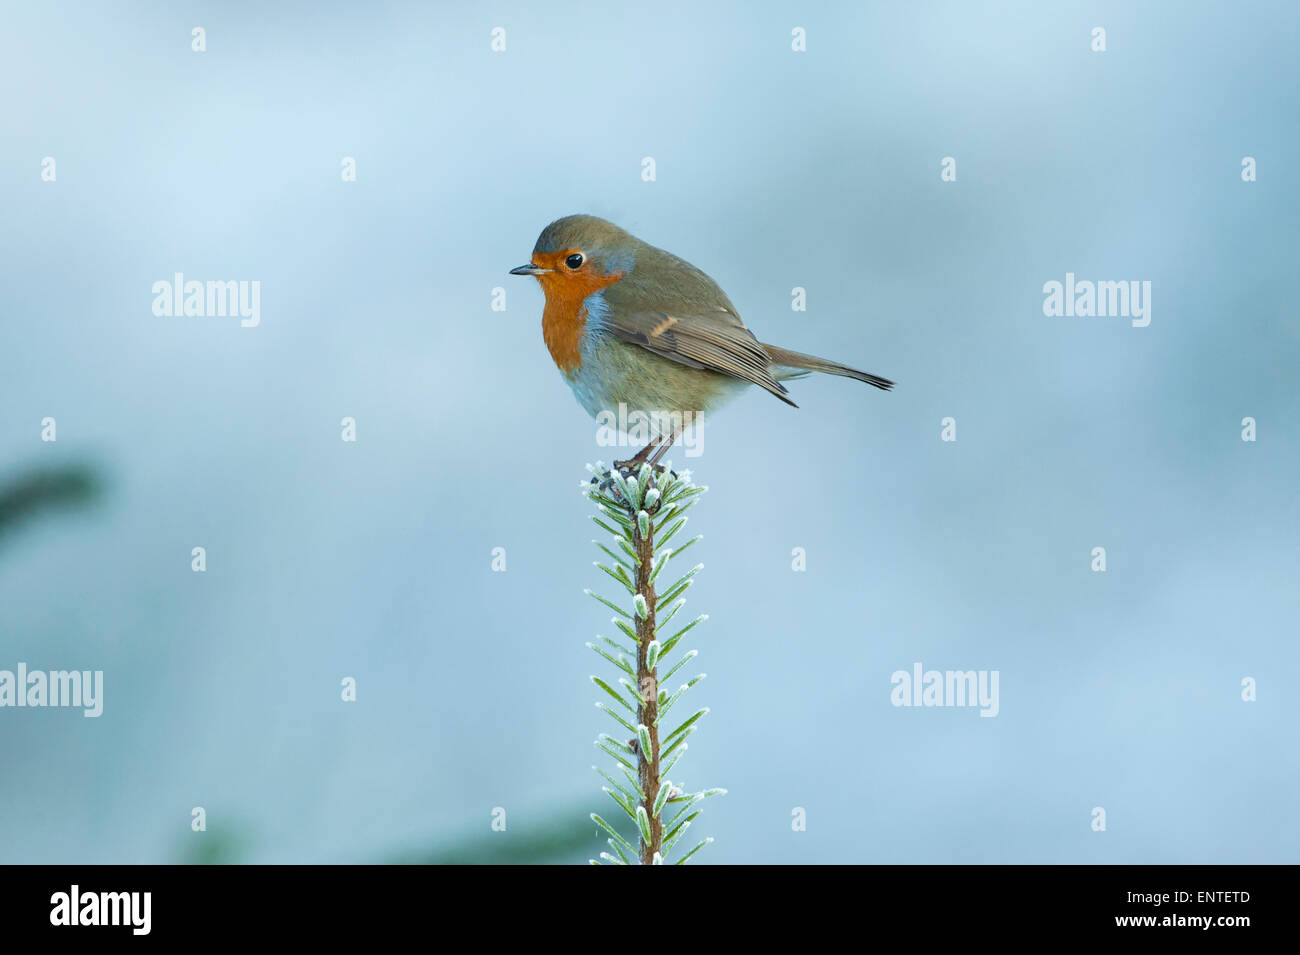 Portrait of a Robin (Erithacus rubecula) sits on the top branch of a Sitka Christmas Tree, UK in winter - Stock Image